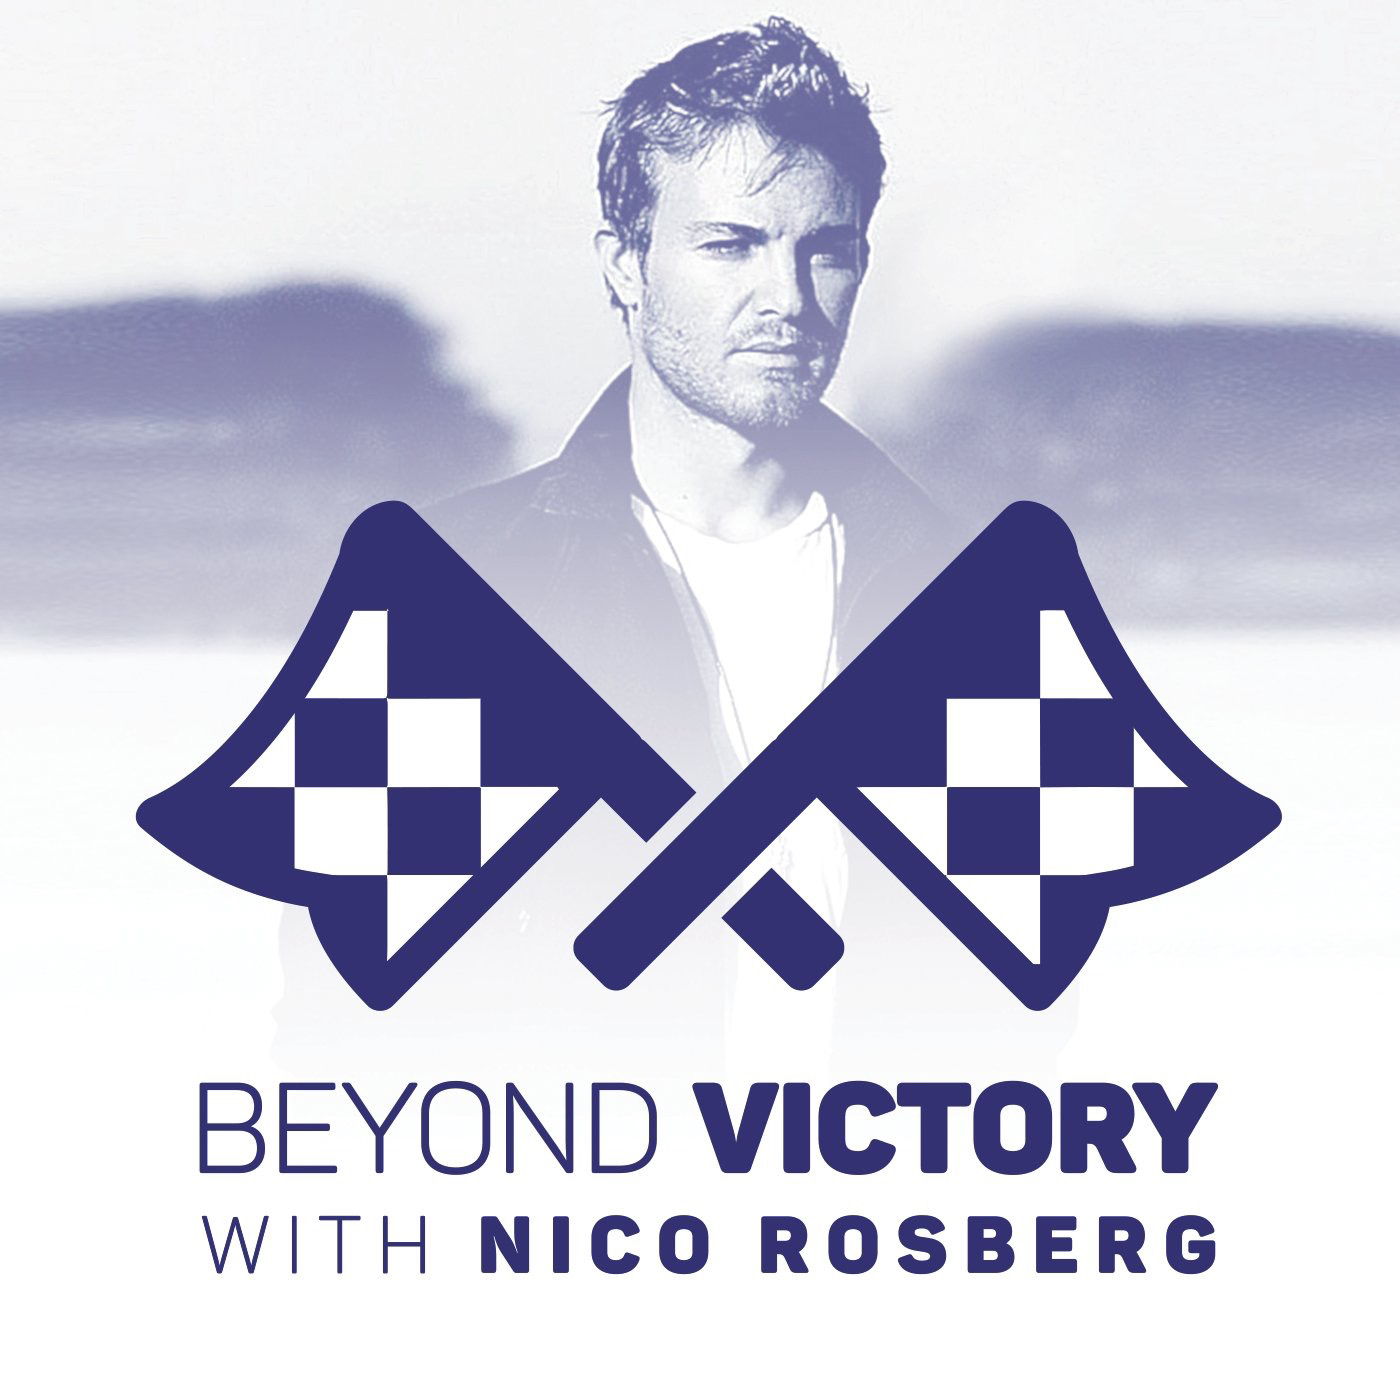 Daniel Ricciardo: 7x Grand Prix Winner, The Honey Badger - Episode 11